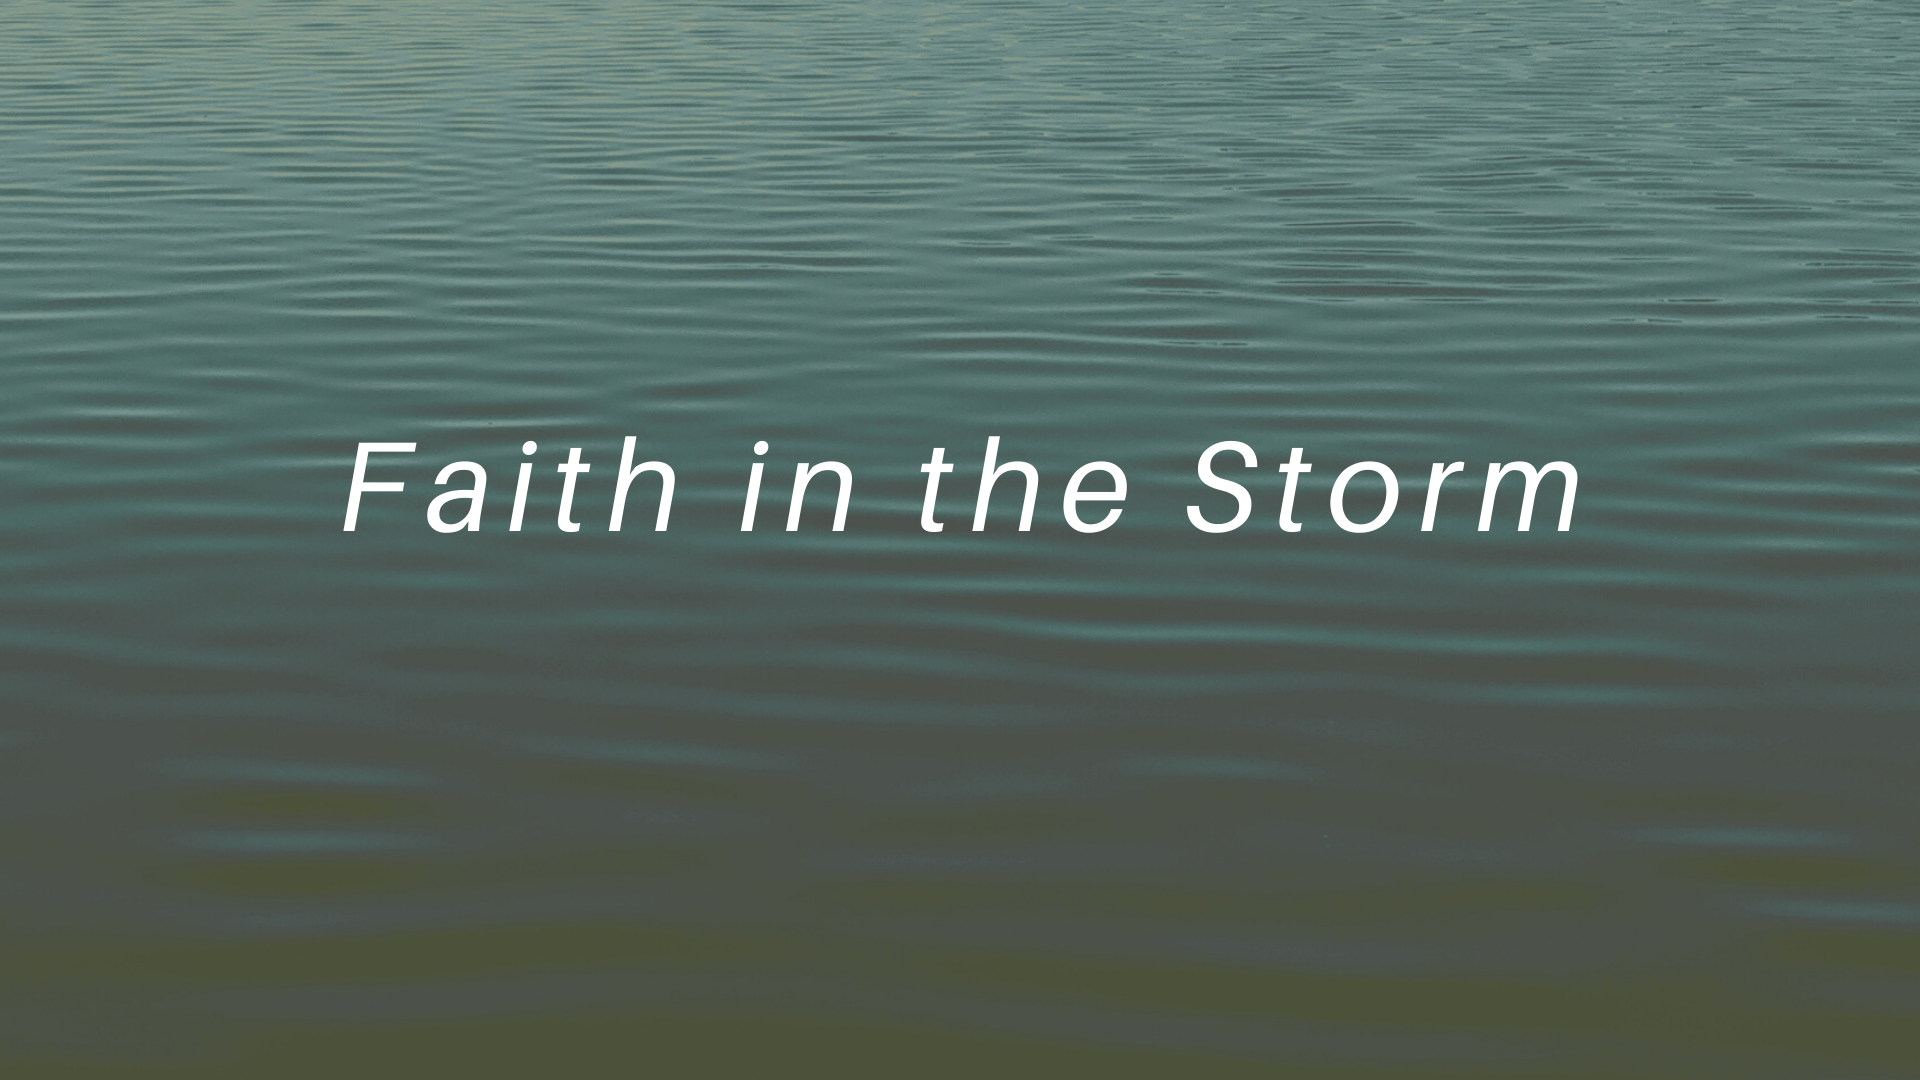 Faith in the Storm